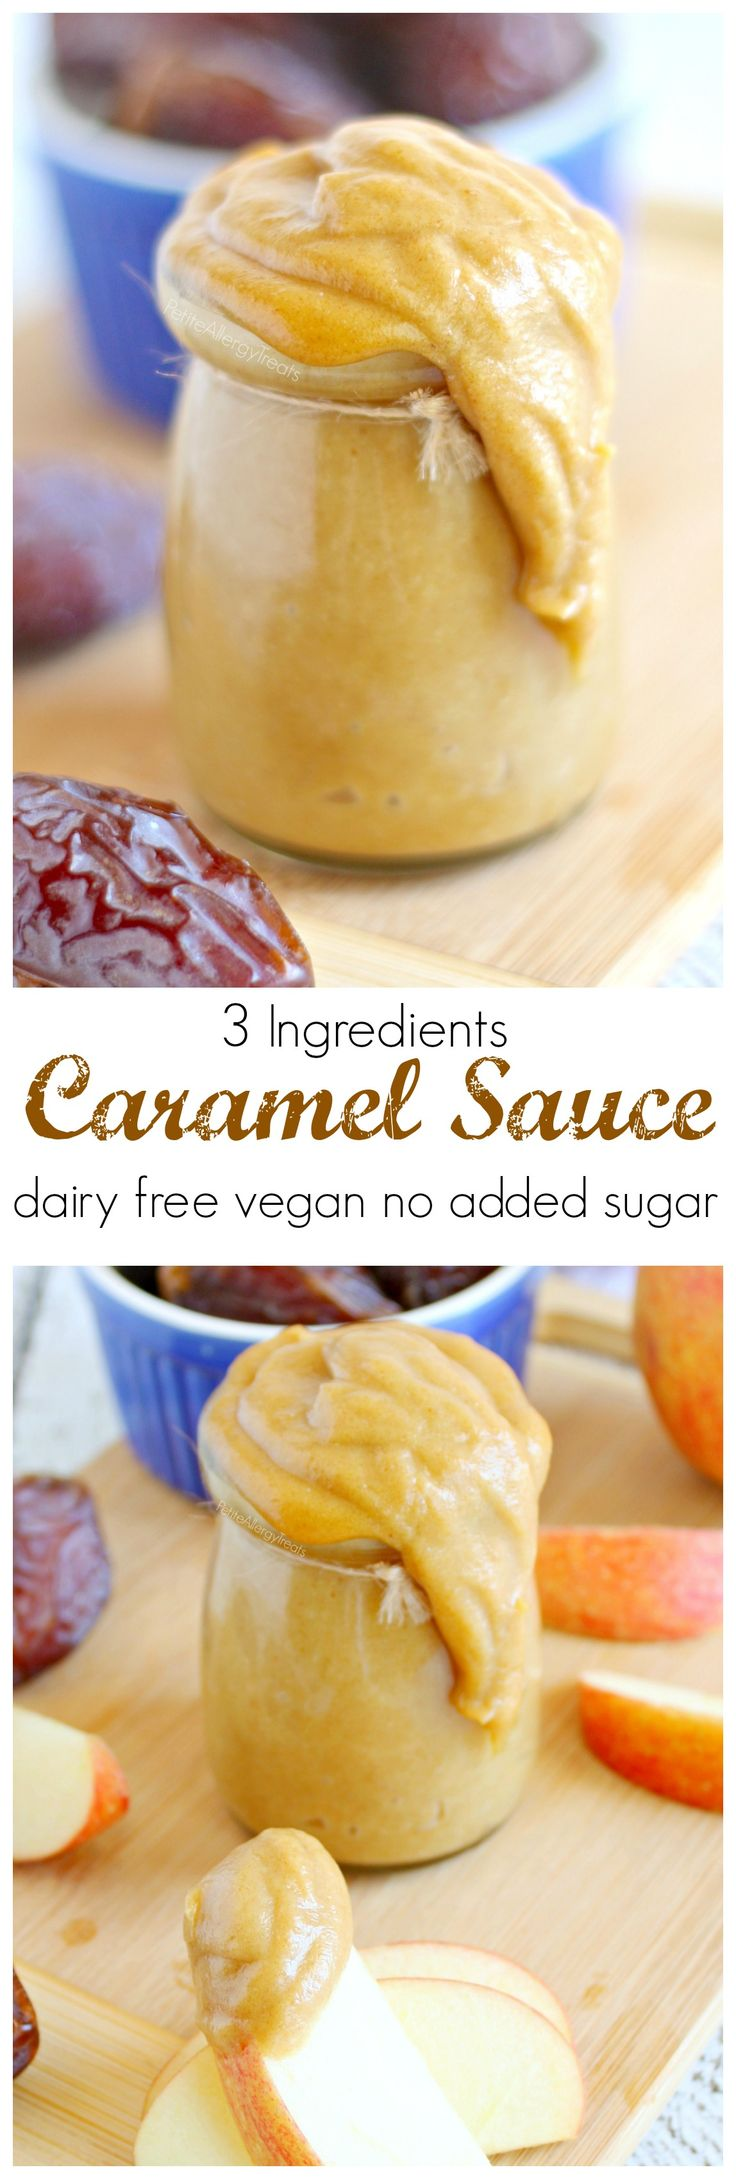 Easy caramel sauce that is dairy free vegan using only 3 ingredients and ready in 5 minutes. Refined sugar free, using healthy dates. A Food Allergy dream!